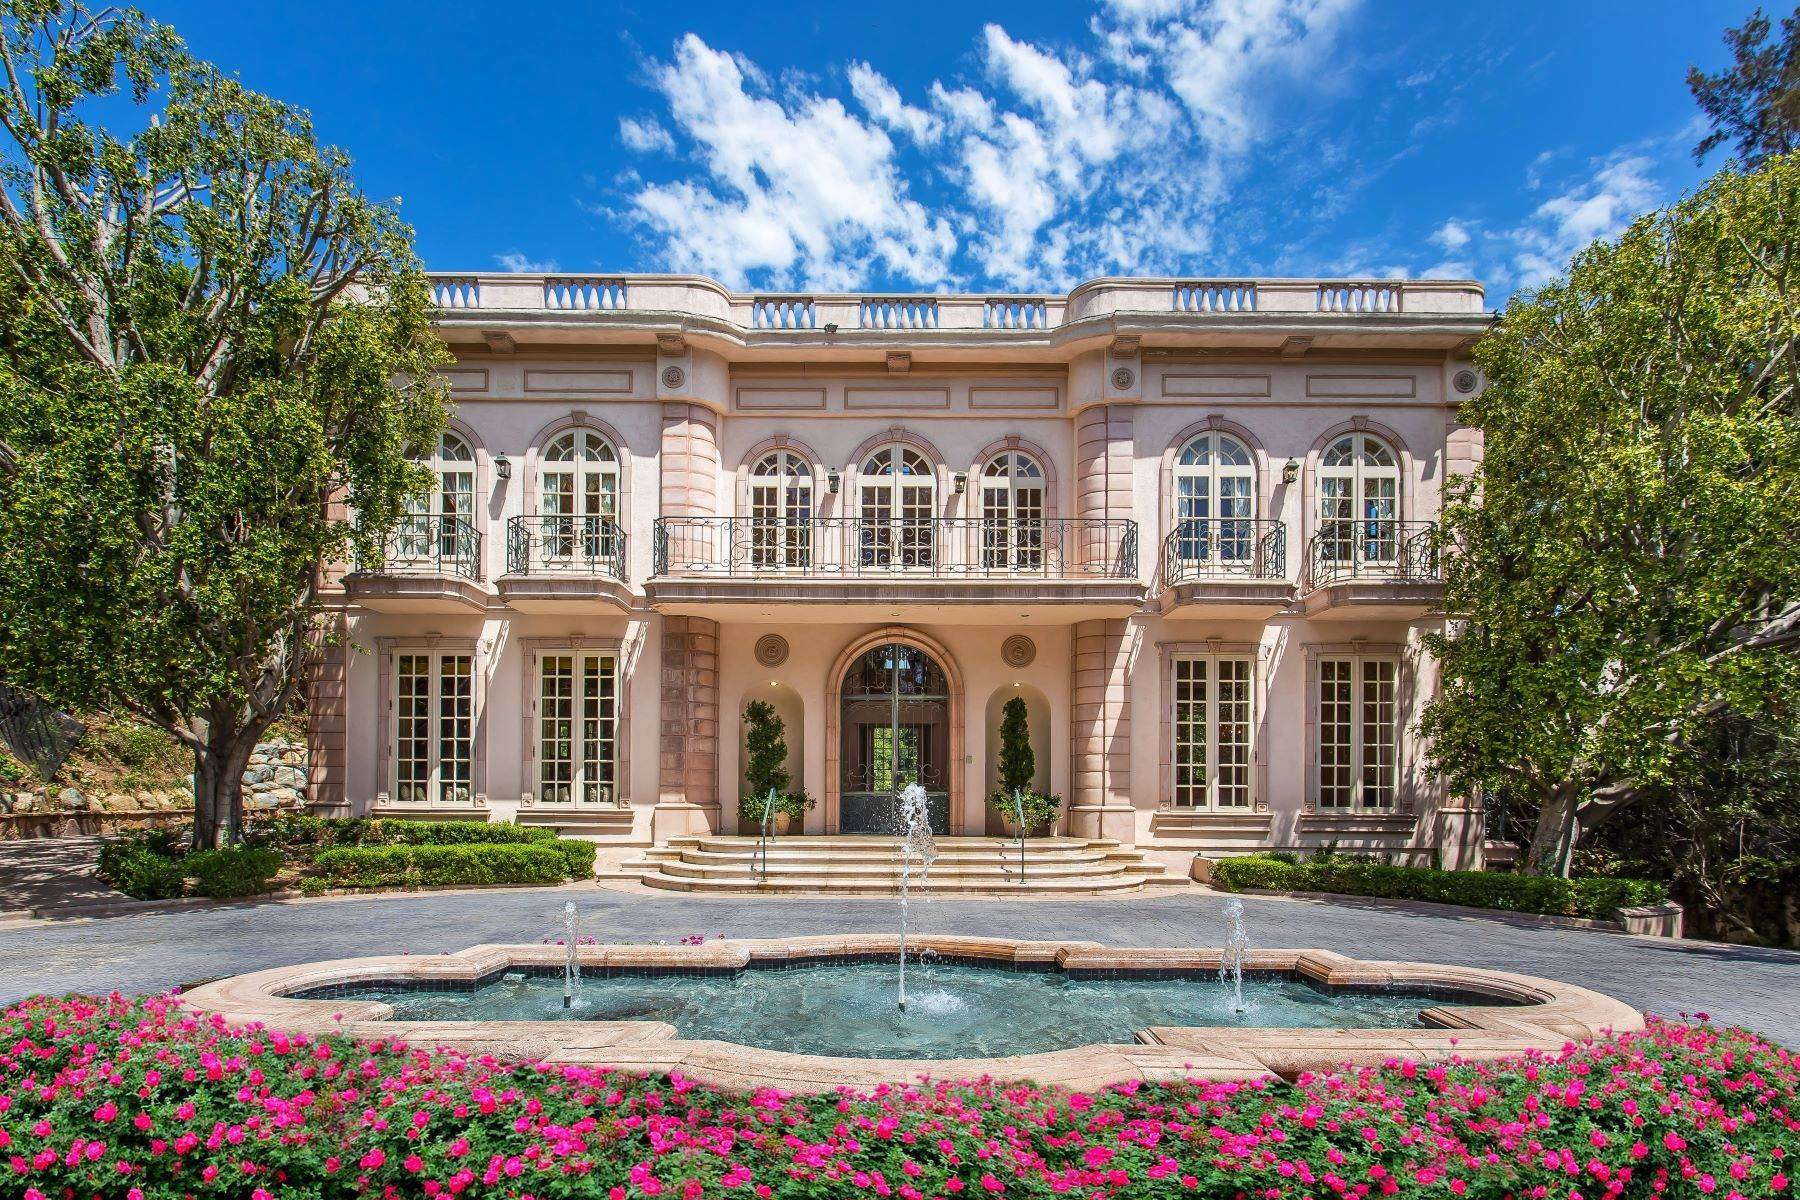 Single Family Homes for Sale at Elegant Holmby Hills Estate 110 North Mapleton Drive Los Angeles, California 90077 United States